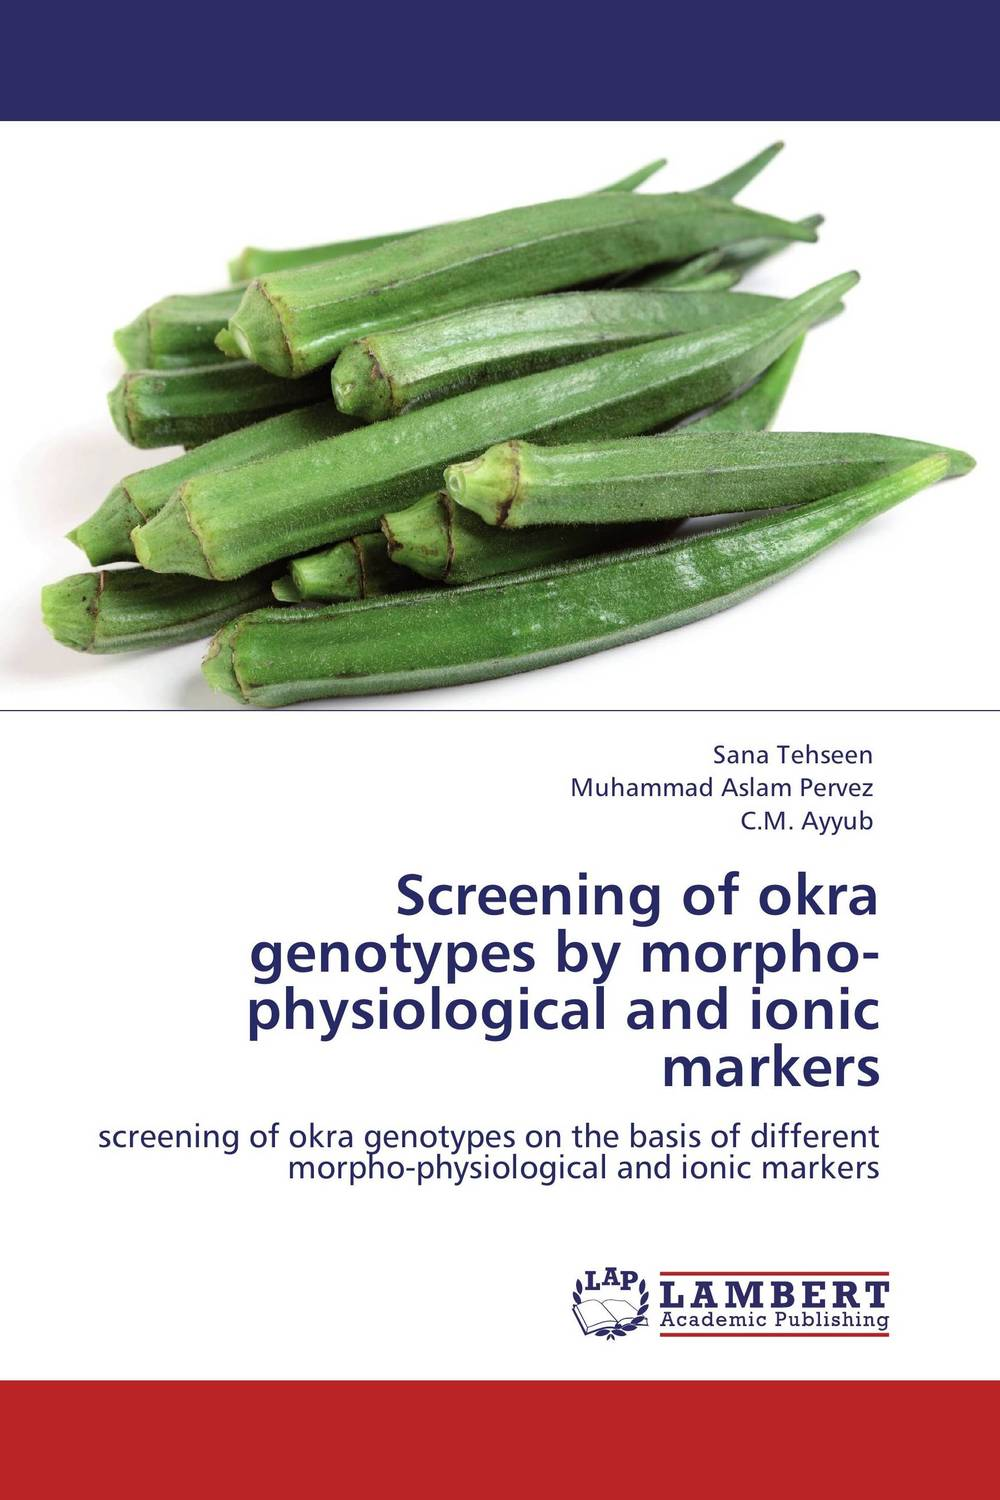 Screening of okra genotypes by morpho-physiological and ionic markers amber sattar and muhammad asif genetics of salinity tolerance in okra